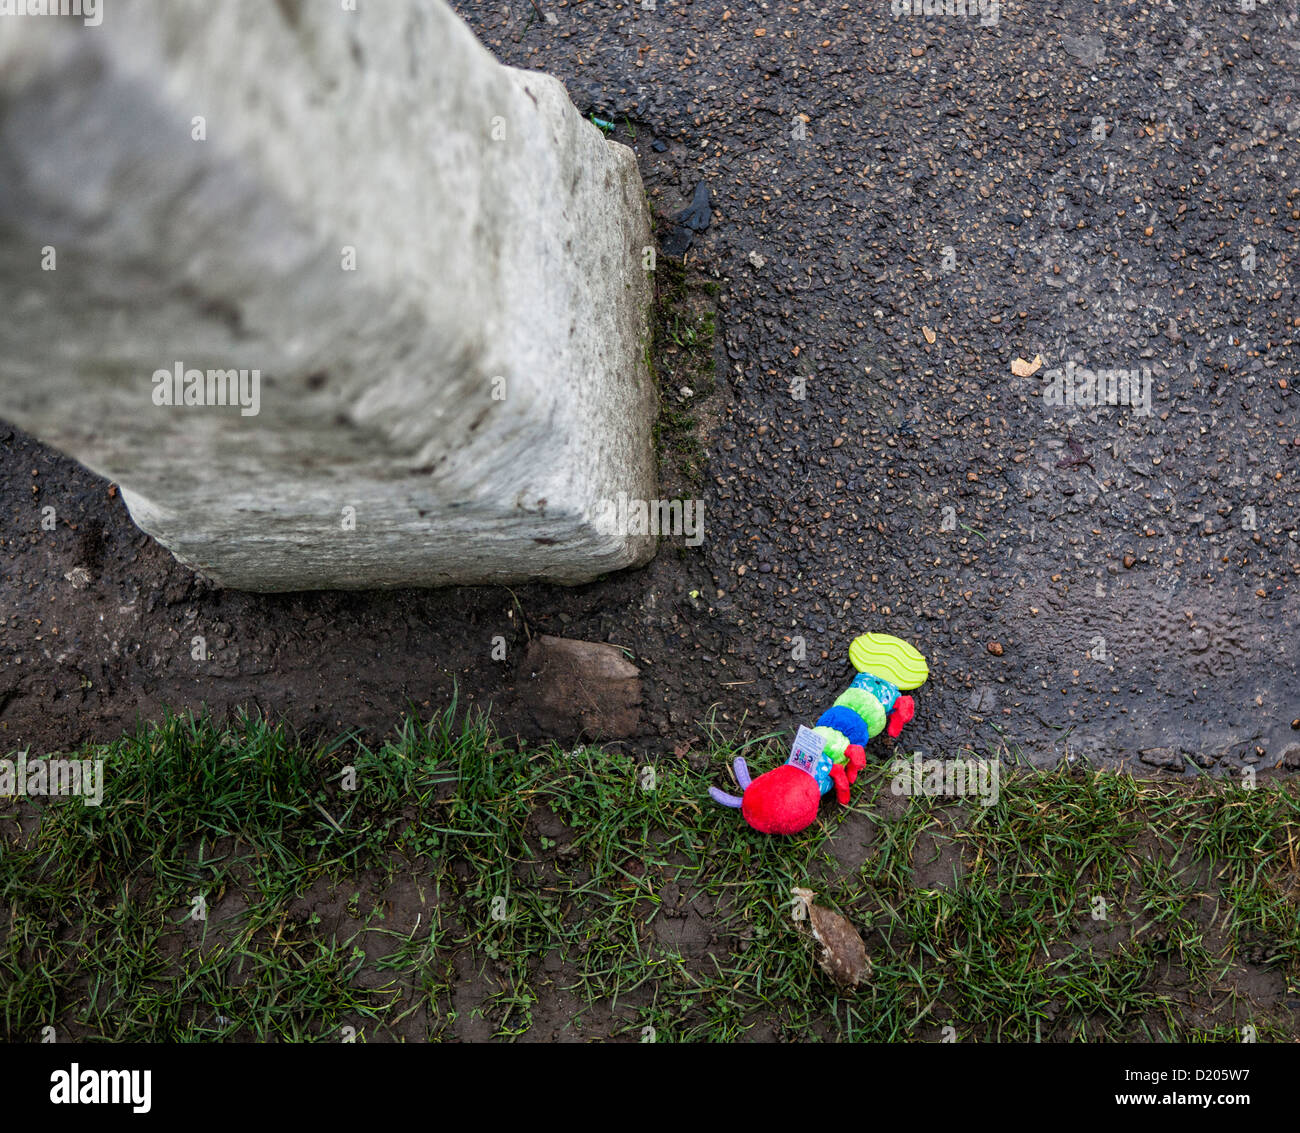 A baby's toy (worm-shaped teething ring or aid) is dropped on the muddy ground Stock Photo